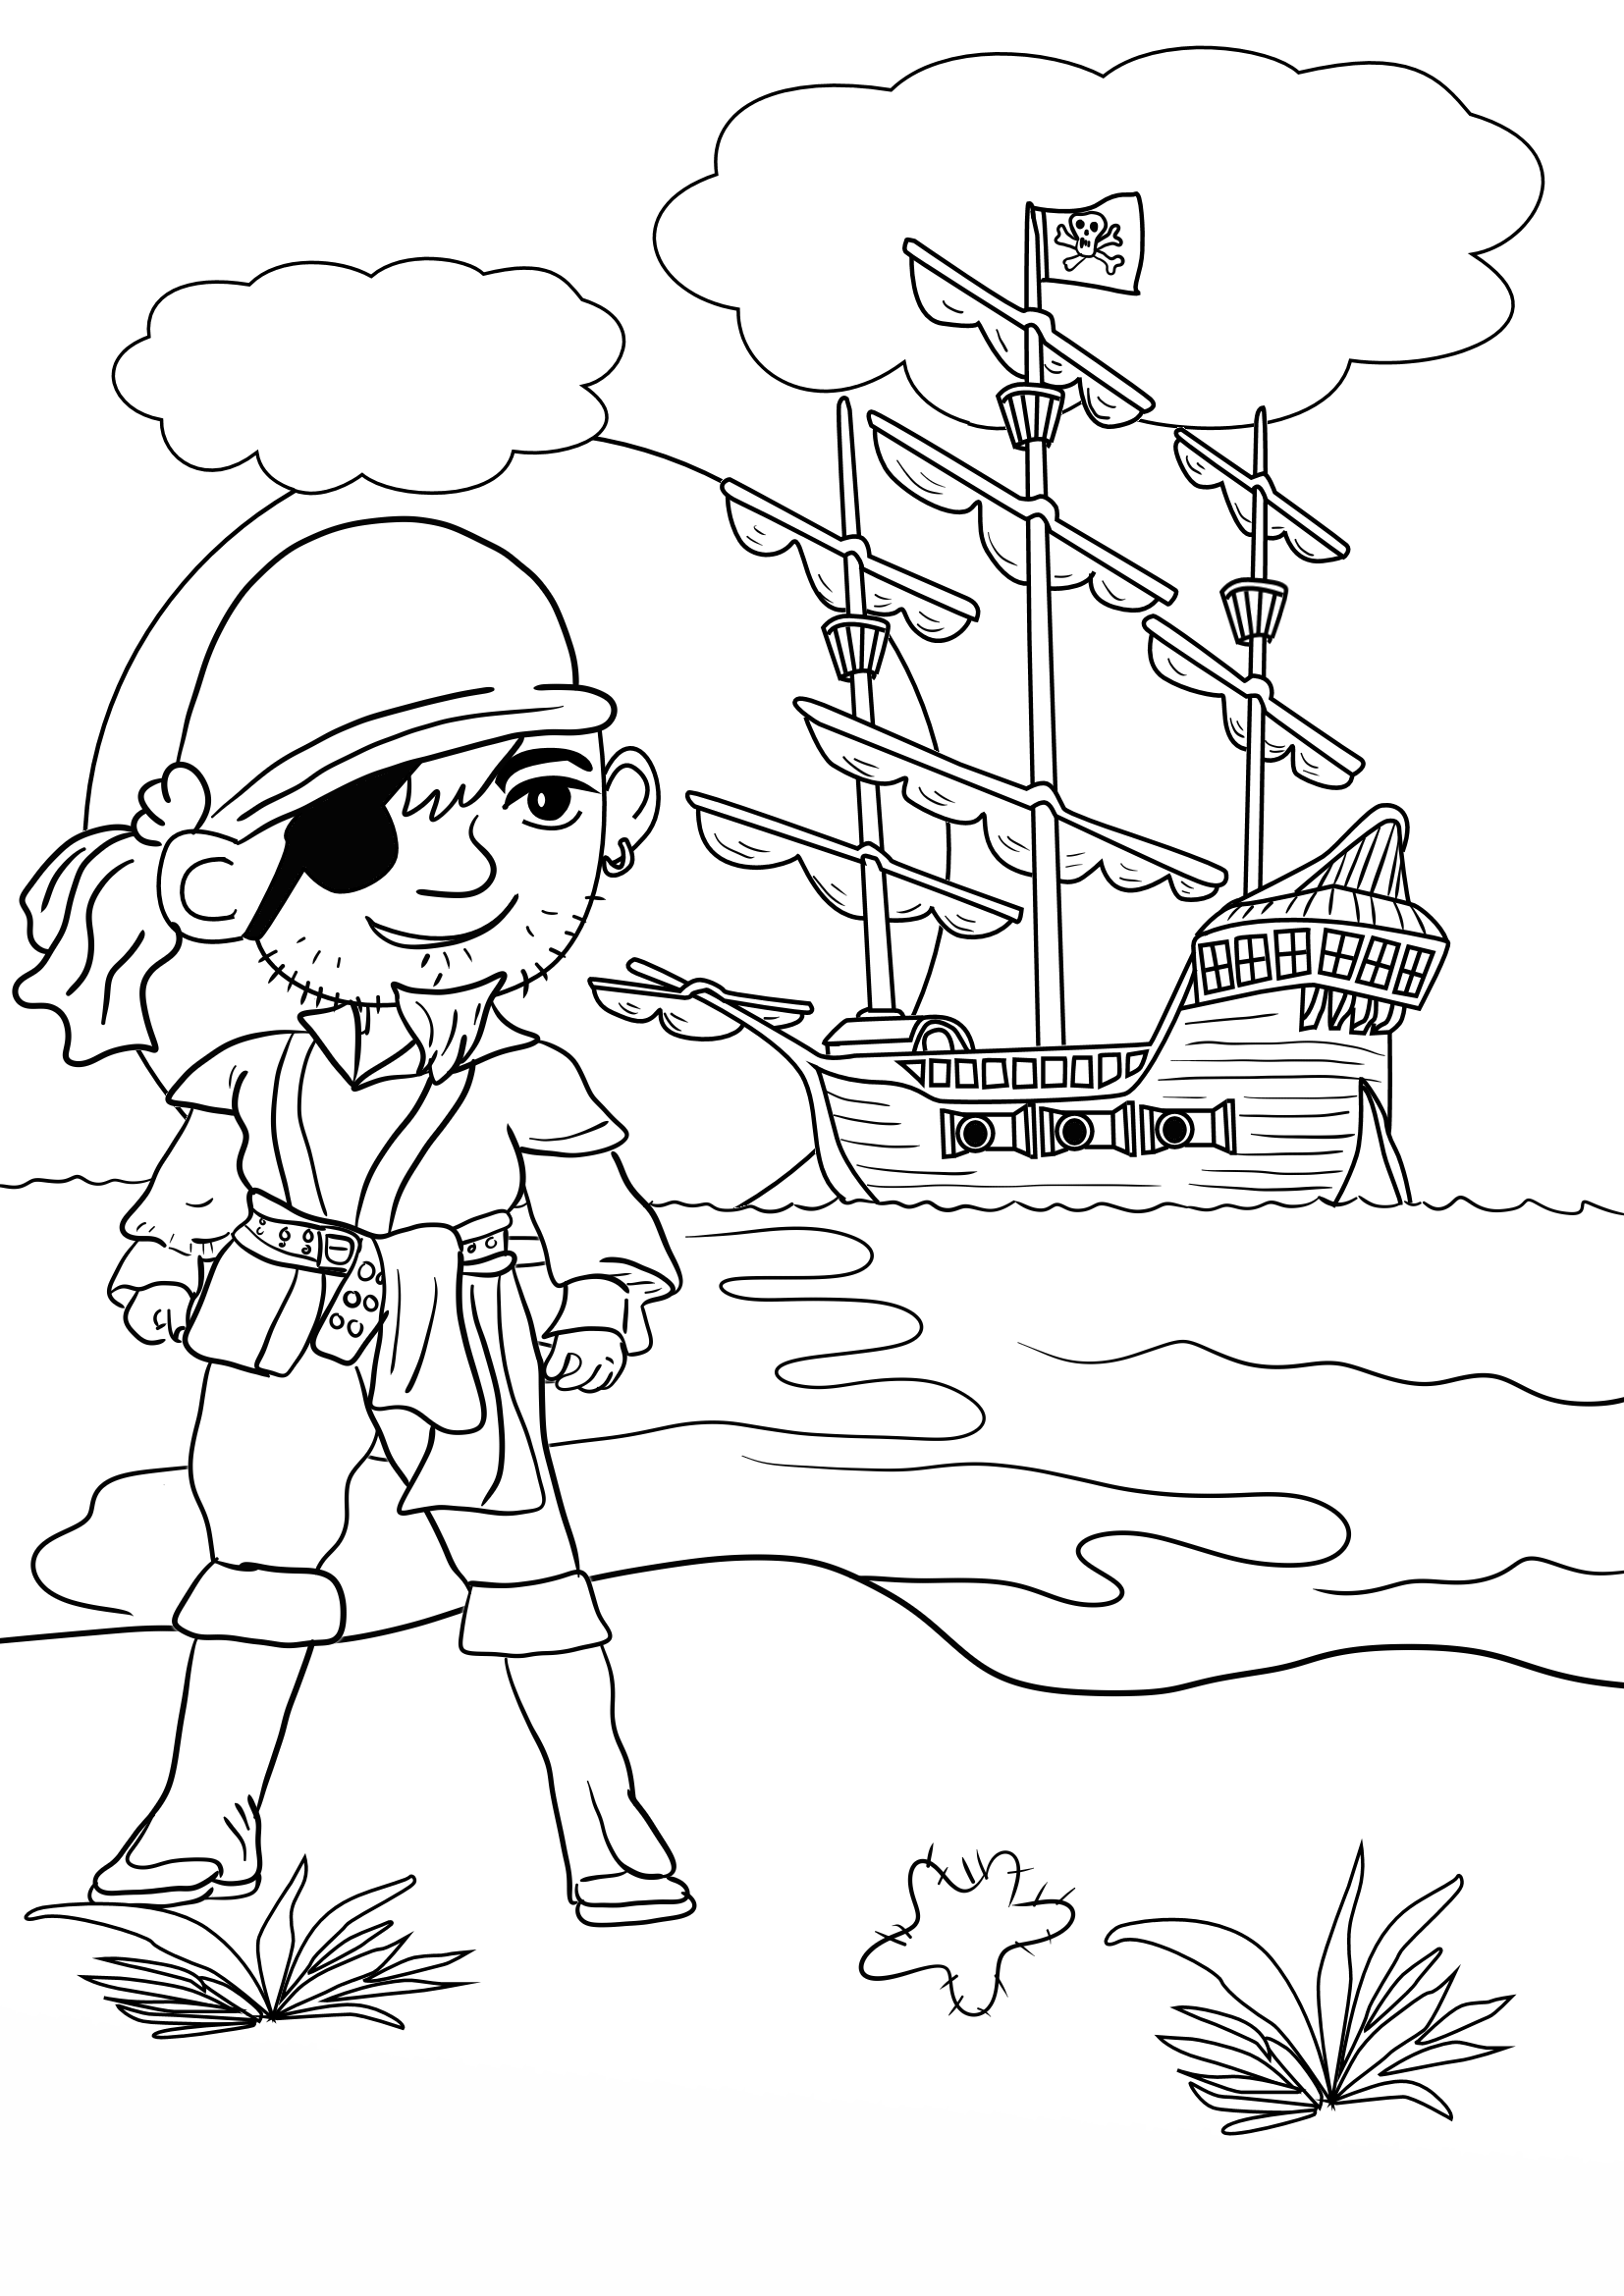 Pirate Colouring Pages For Kids In The Playroom